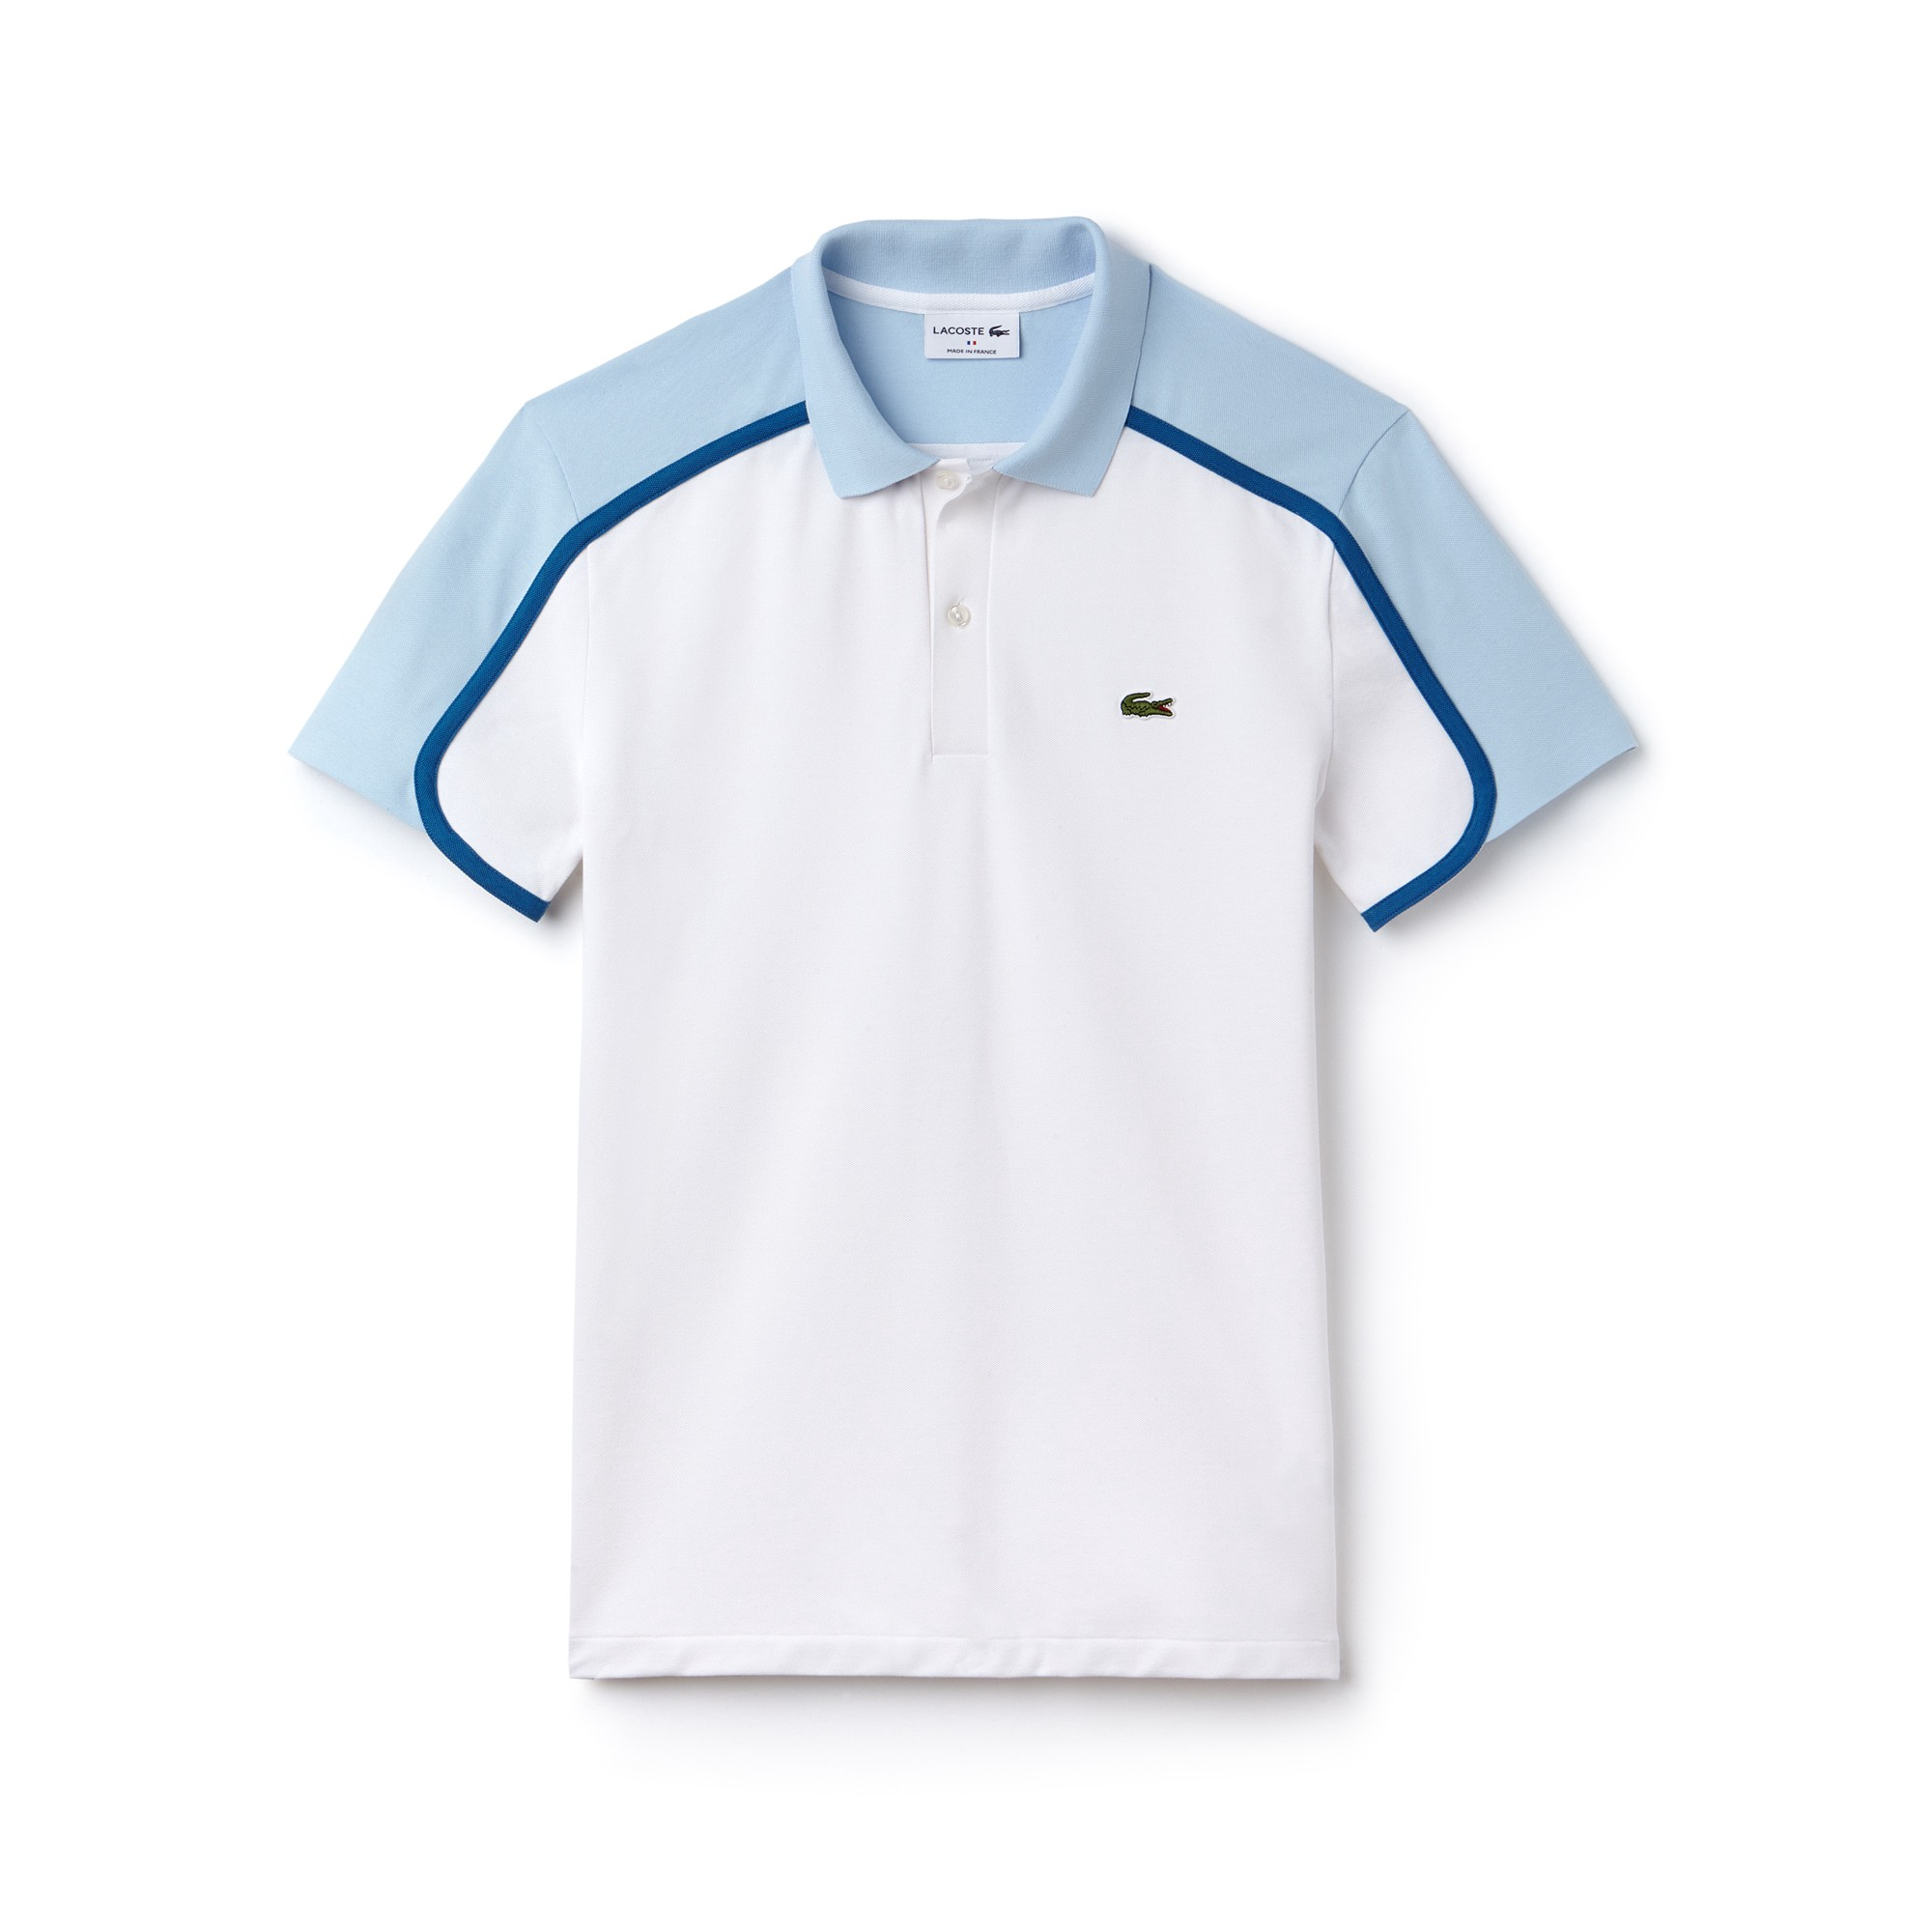 10160e34 Lacoste Men's Made In France Slim Fit Piqué Polo - White/Rill-Medway ...